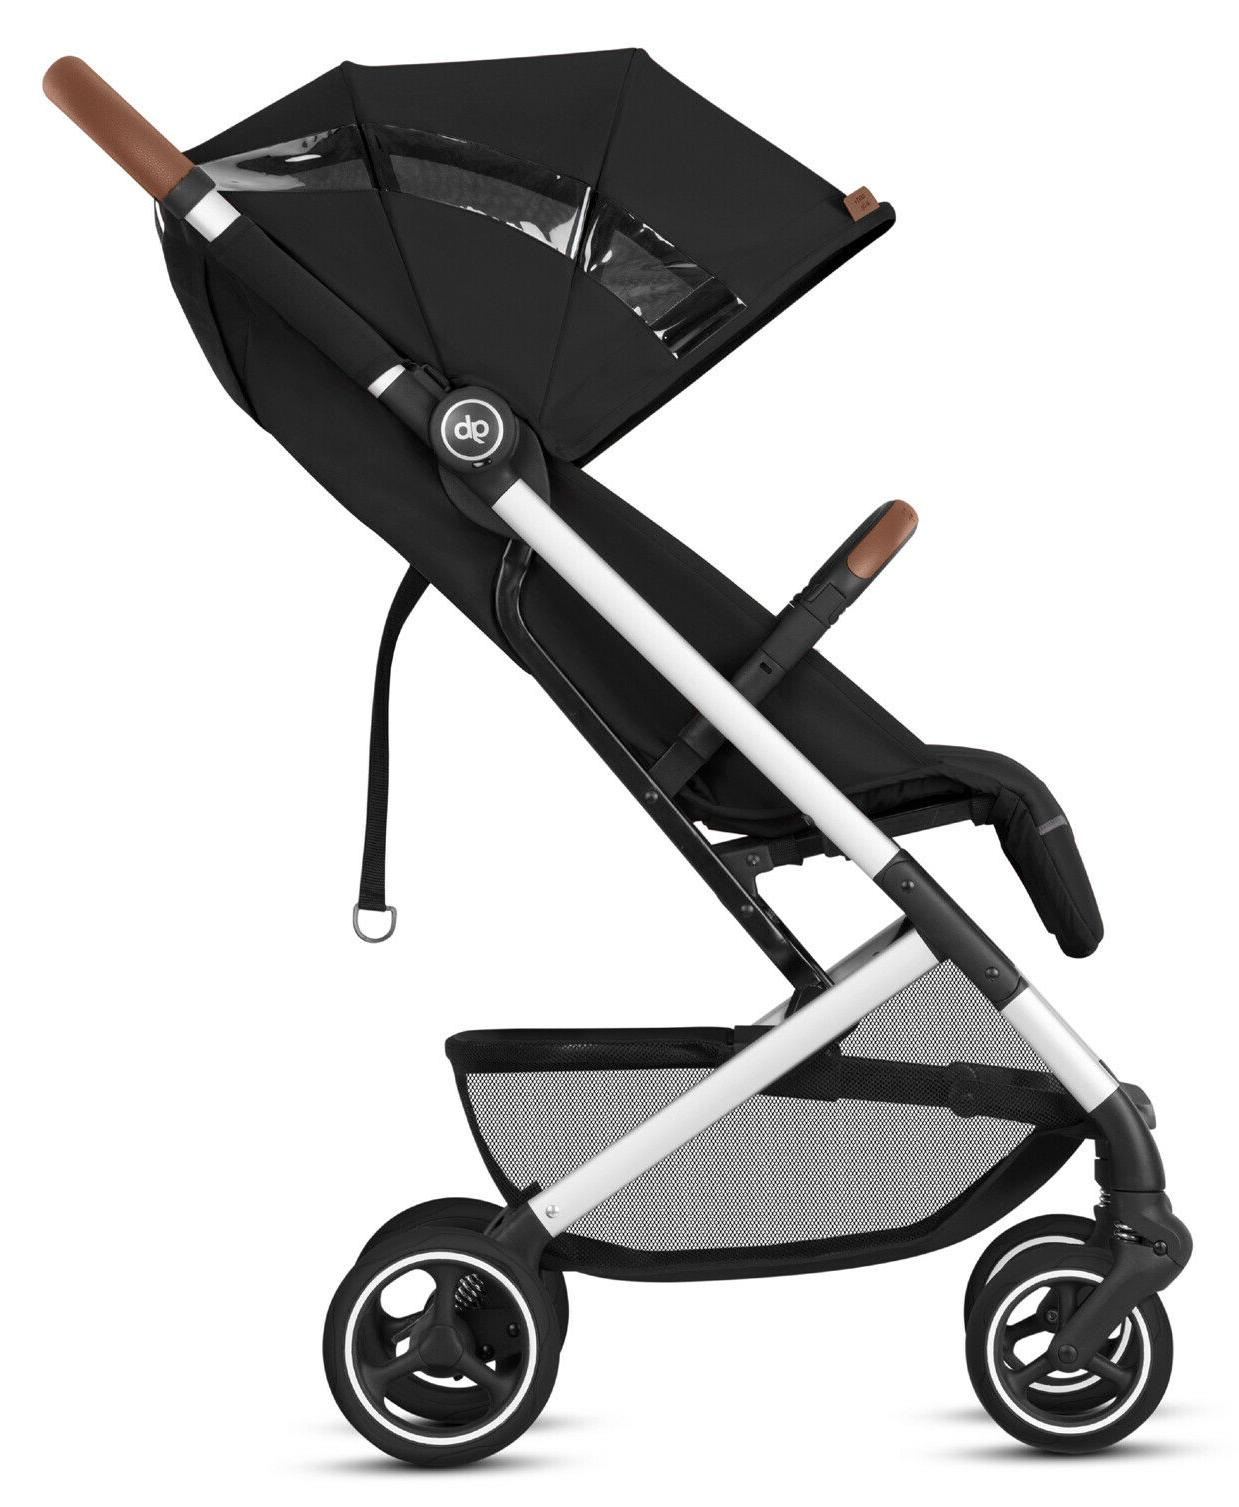 GB ALL-CITY FE Compact Fold Stroller